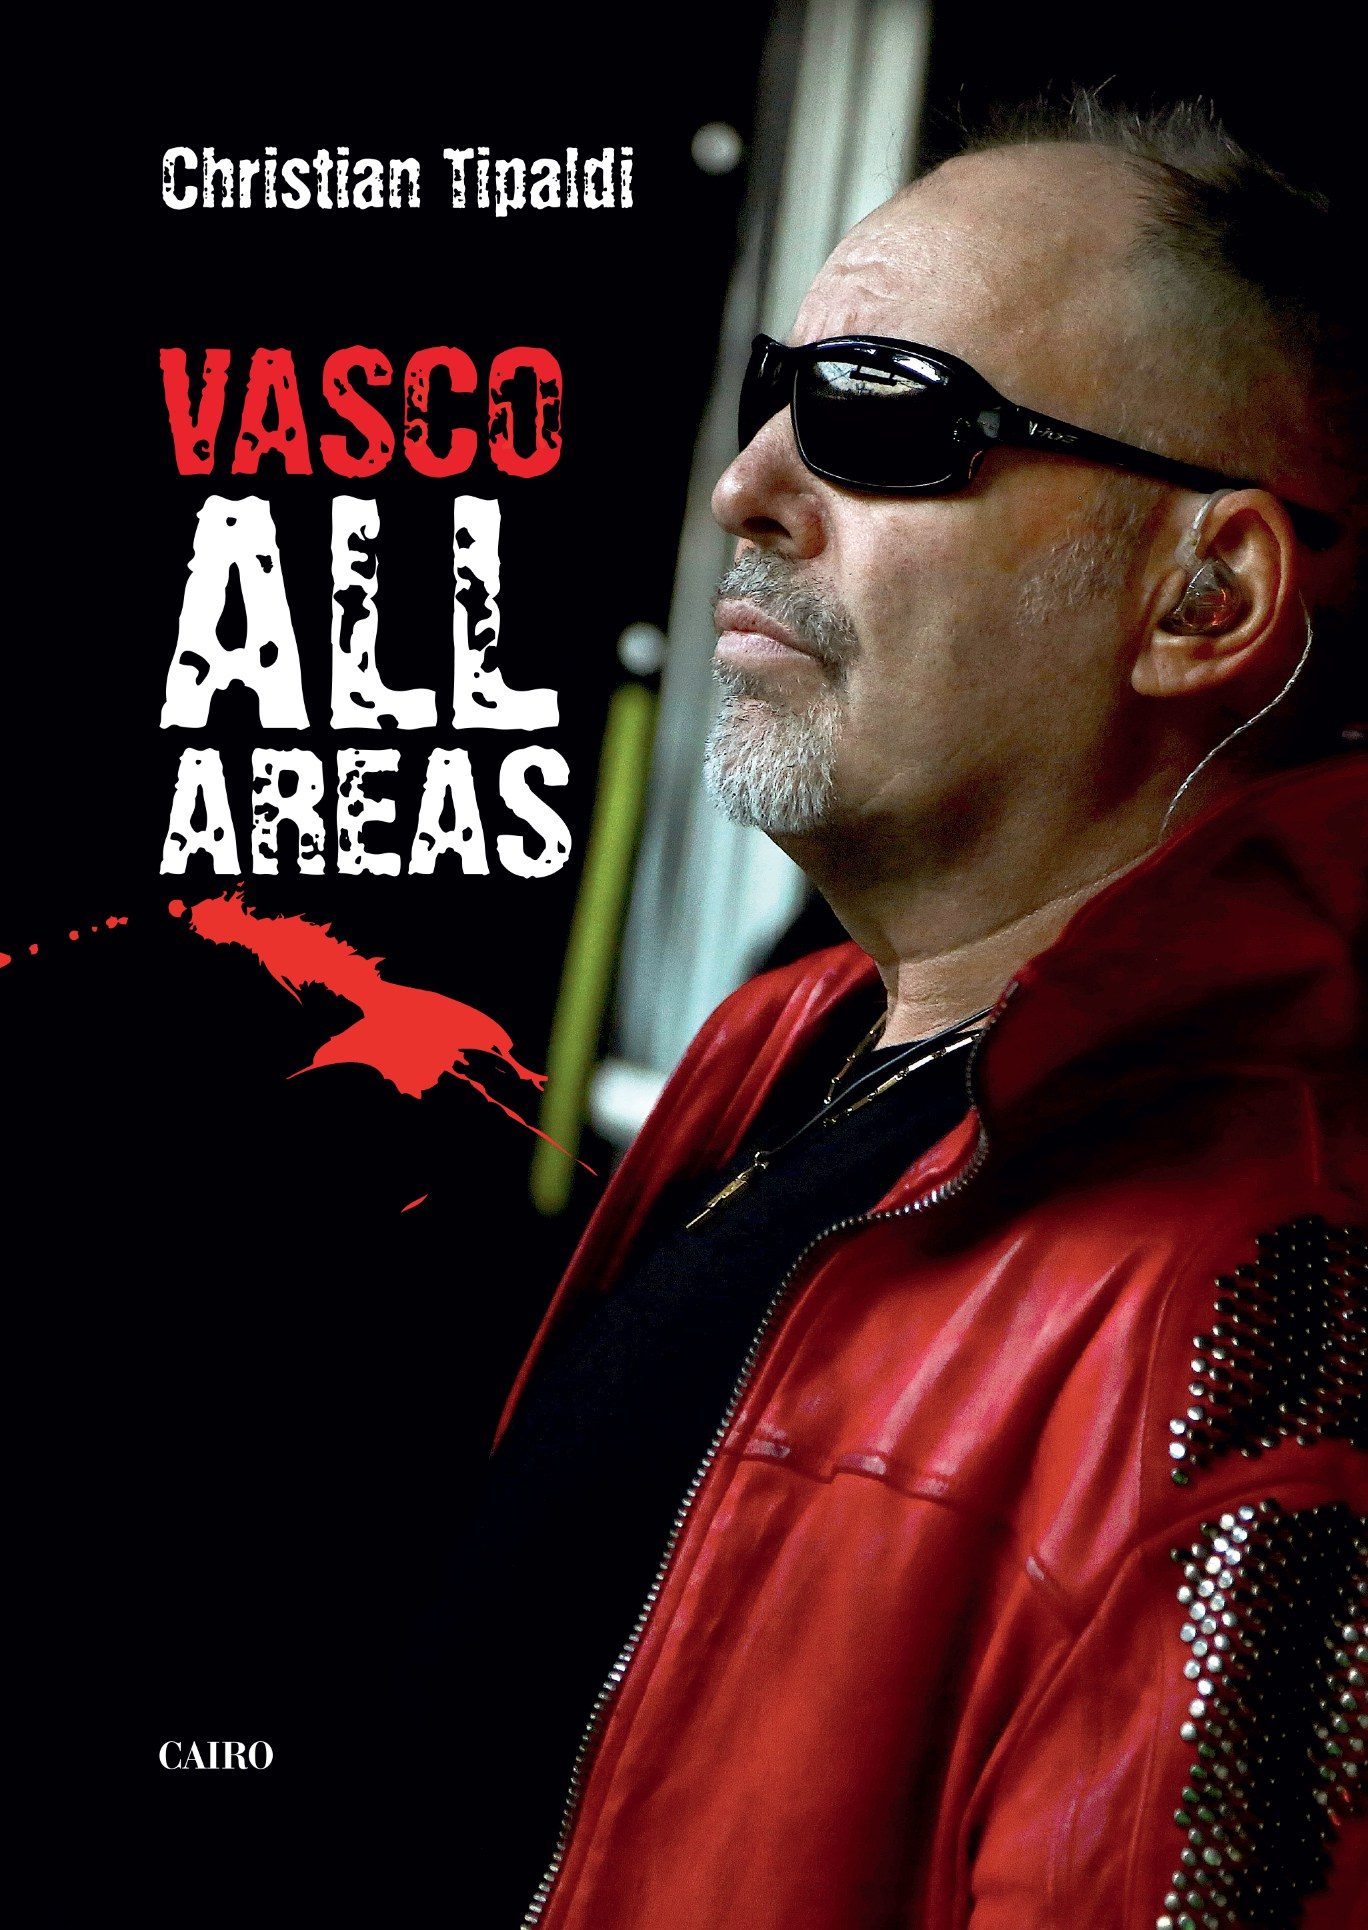 Youtube Musica Vasco Rossi E Vasco All Areas Il Fotografo Ufficiale Svela Vasco